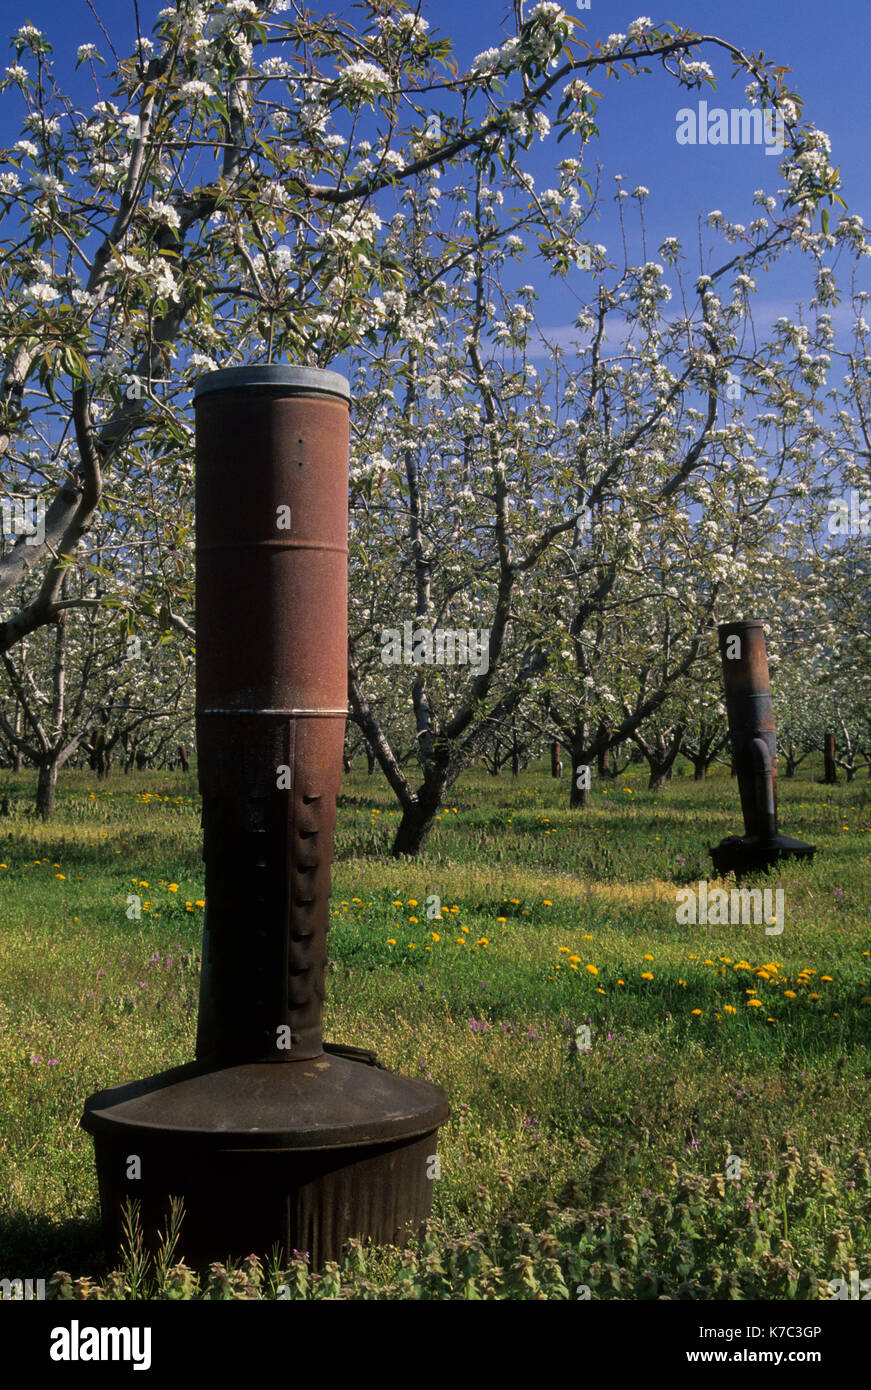 Pear orchard in bloom with smudge pot, Hood River County, Oregon - Stock Image